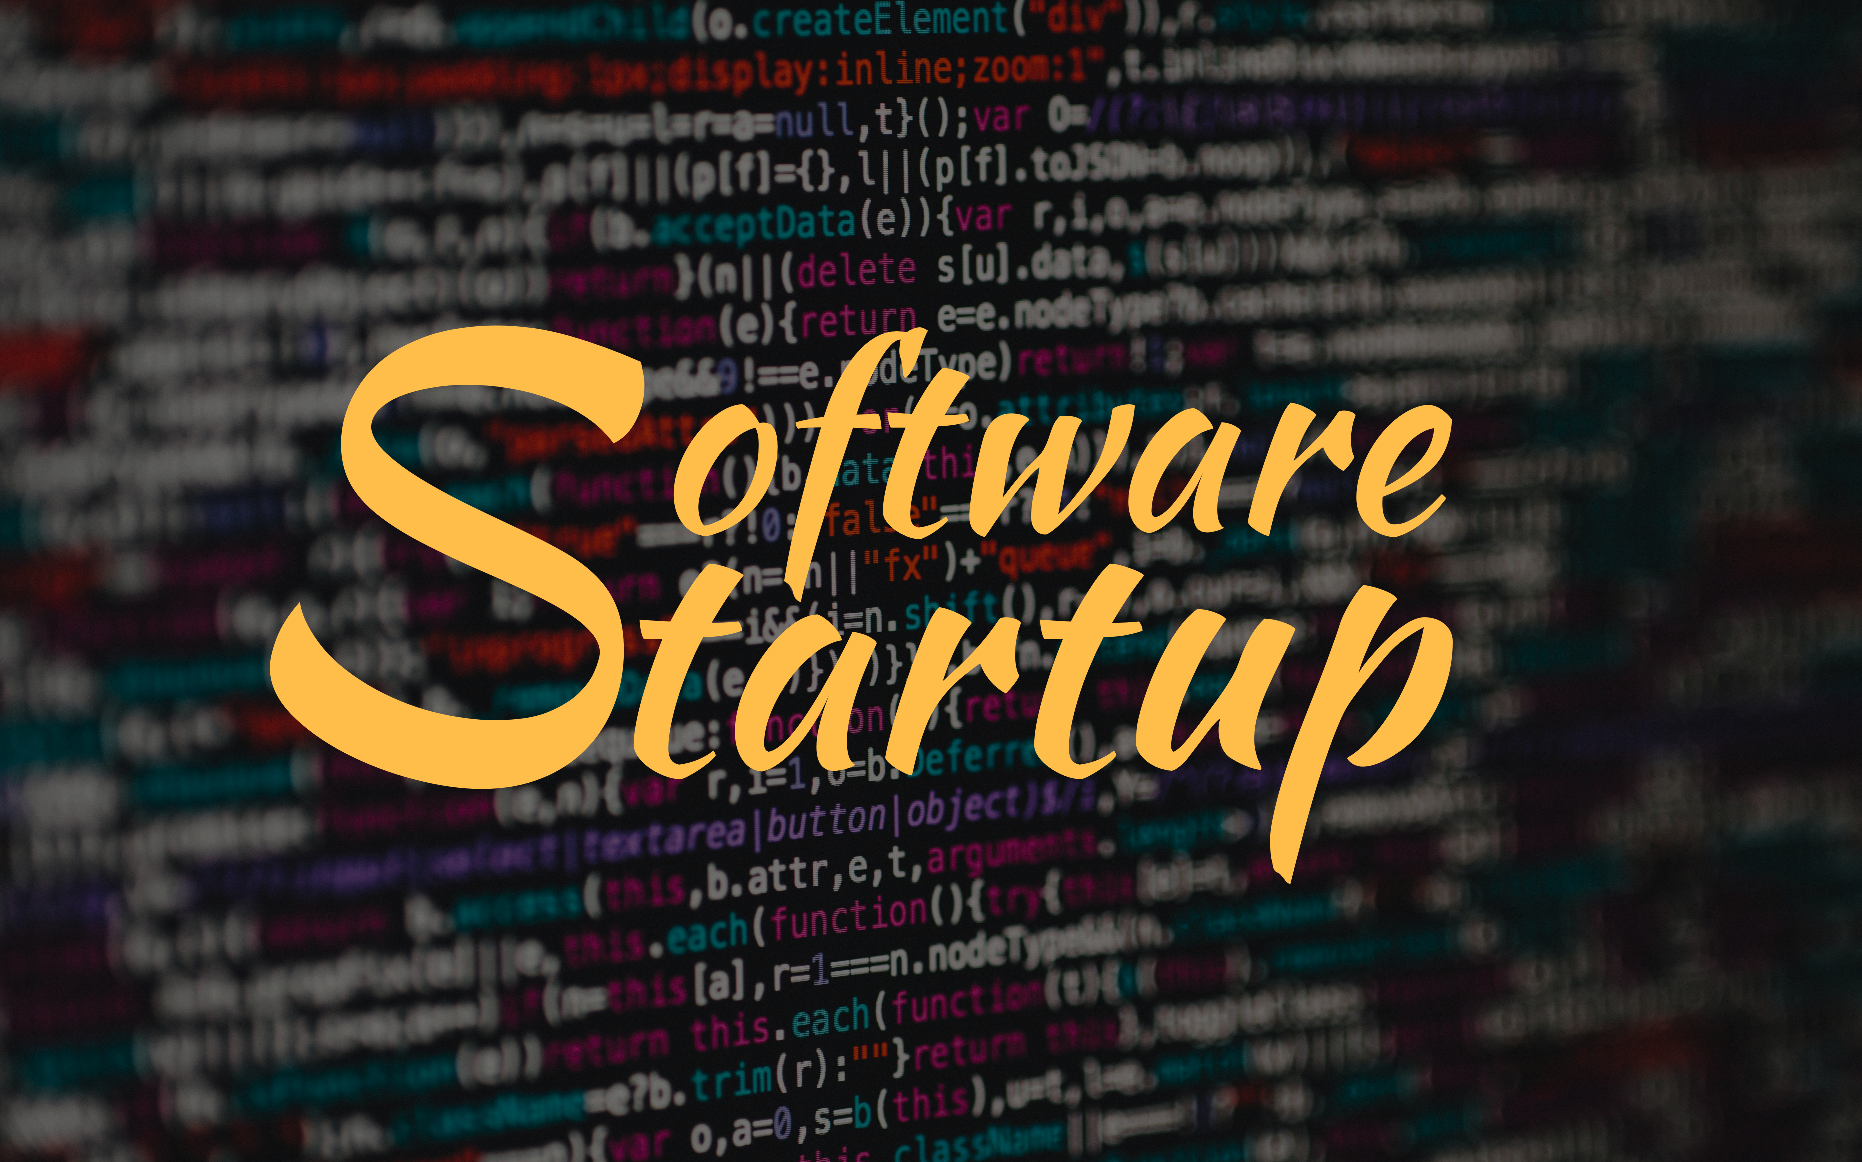 software startup, software startup companies, software startups, software startup ideas, How to startup software company